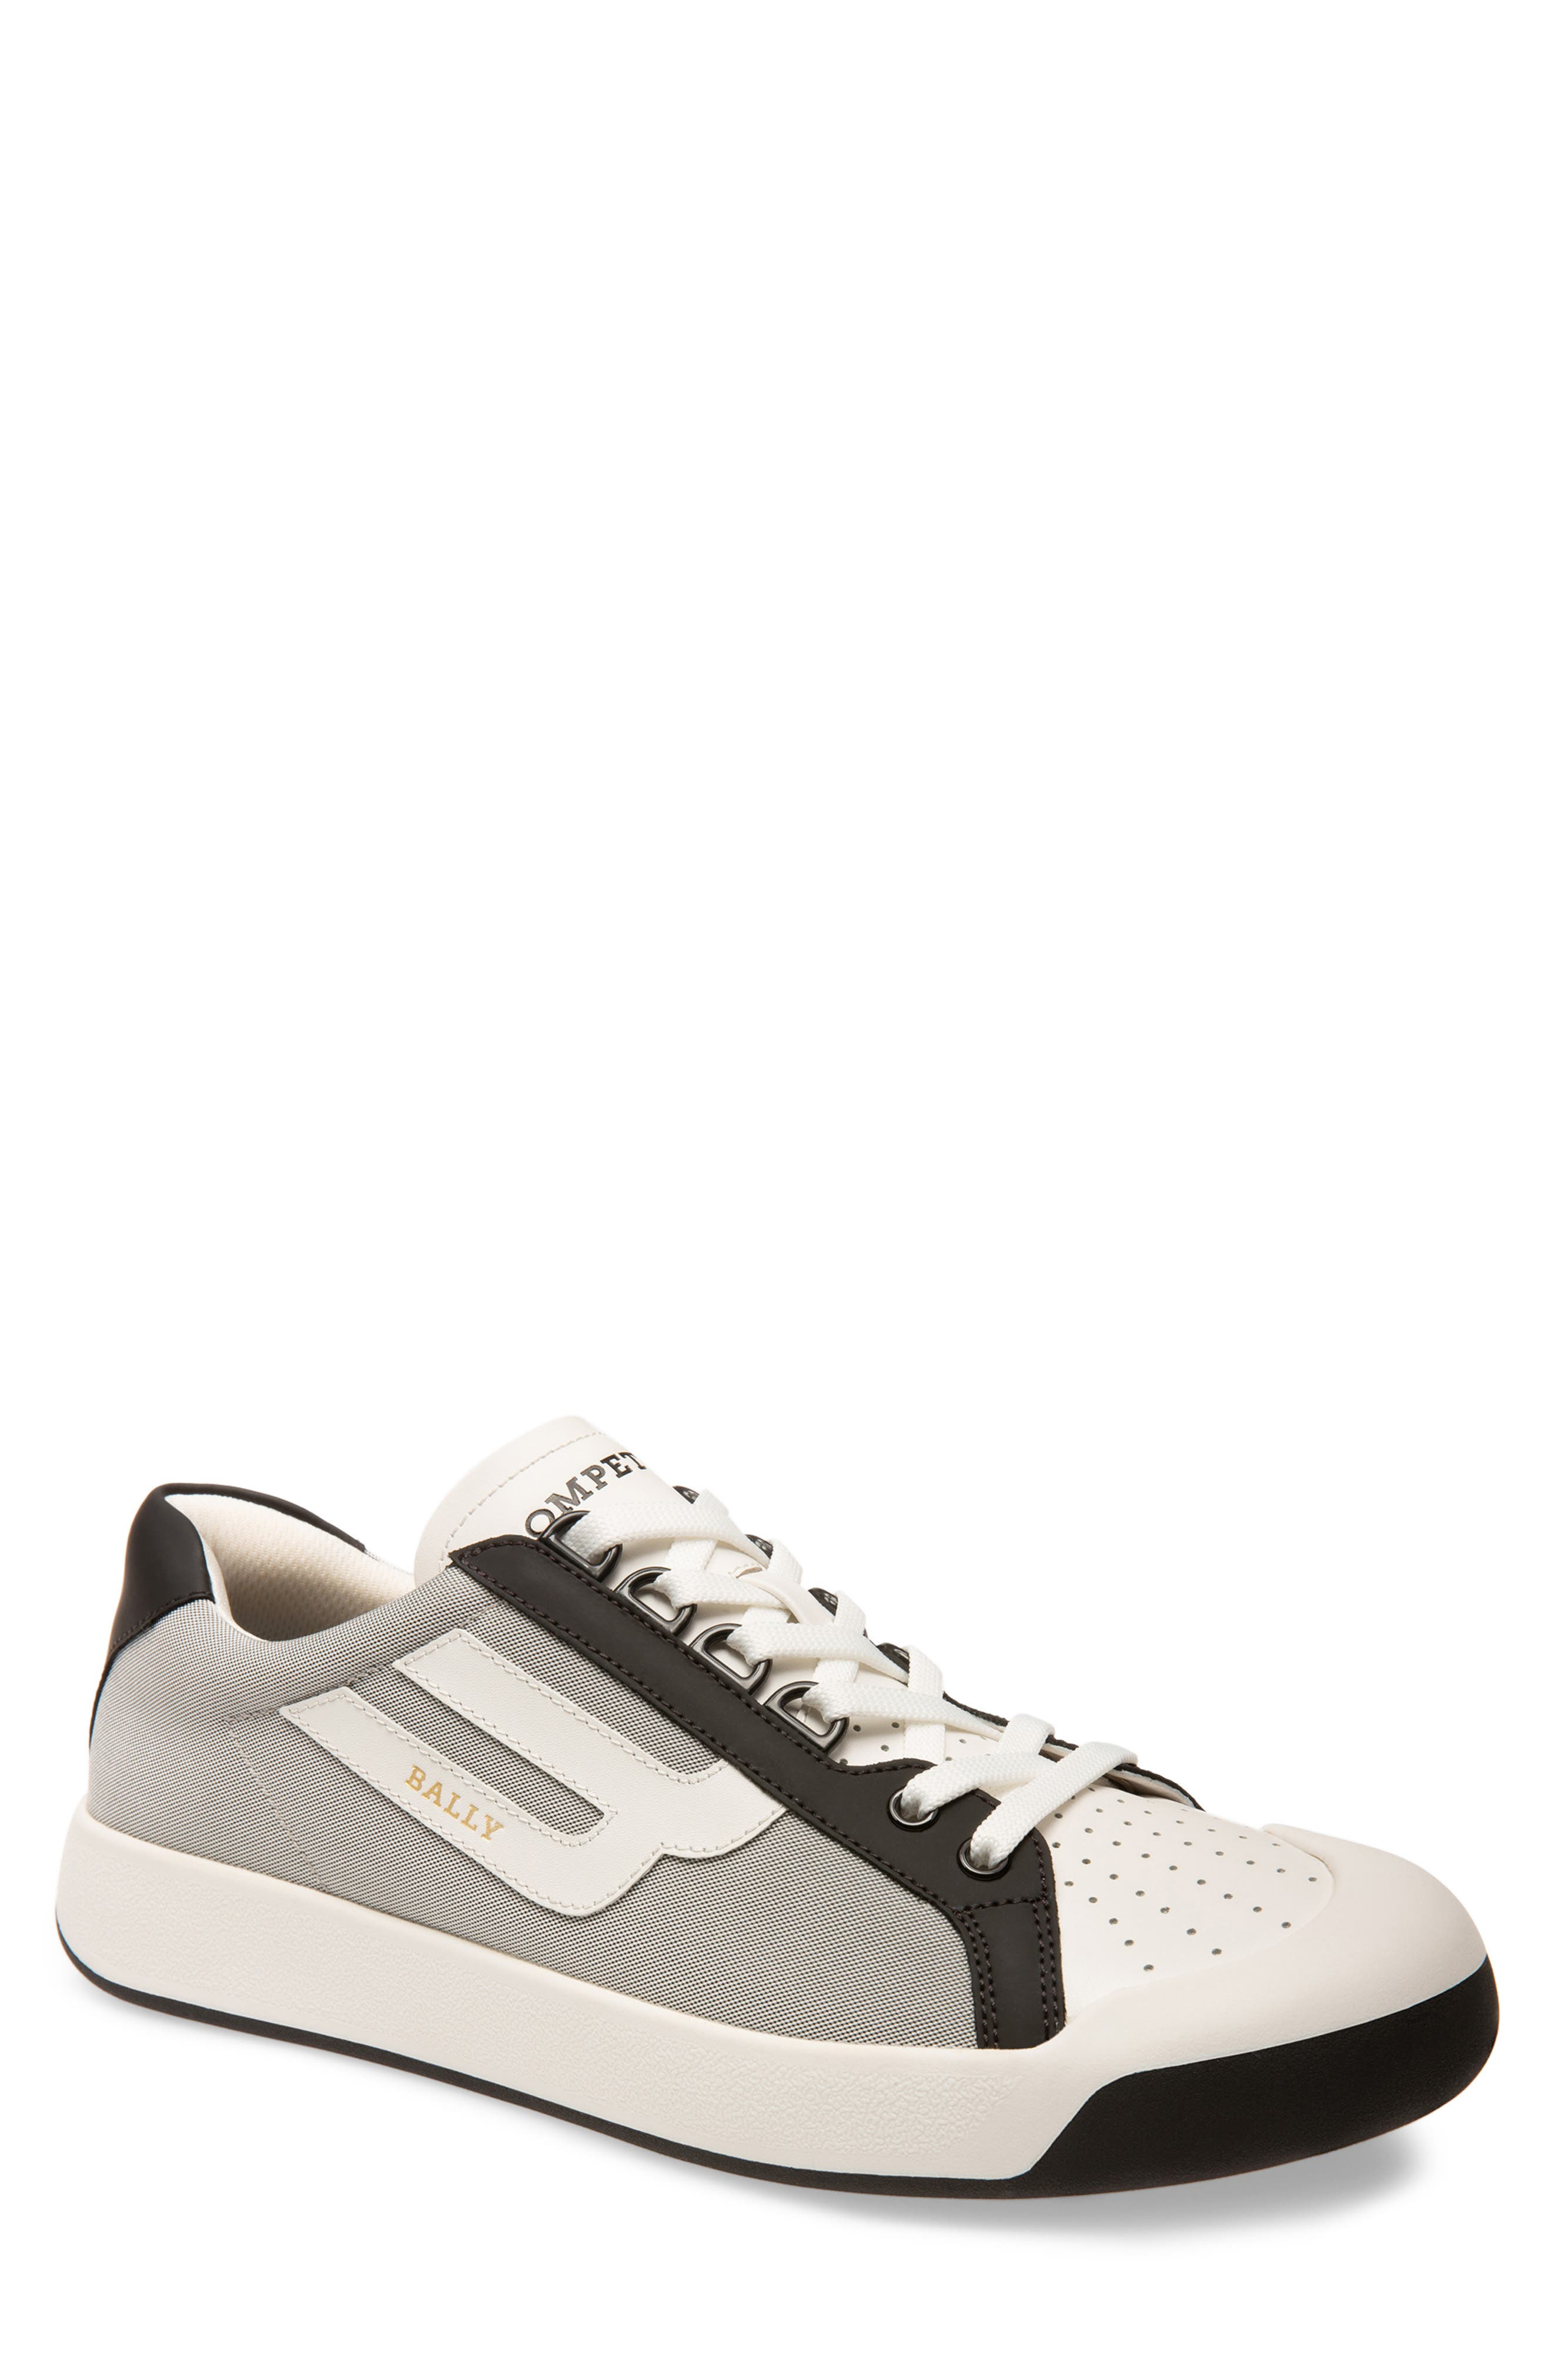 BALLY | New Competition Low Top Sneaker